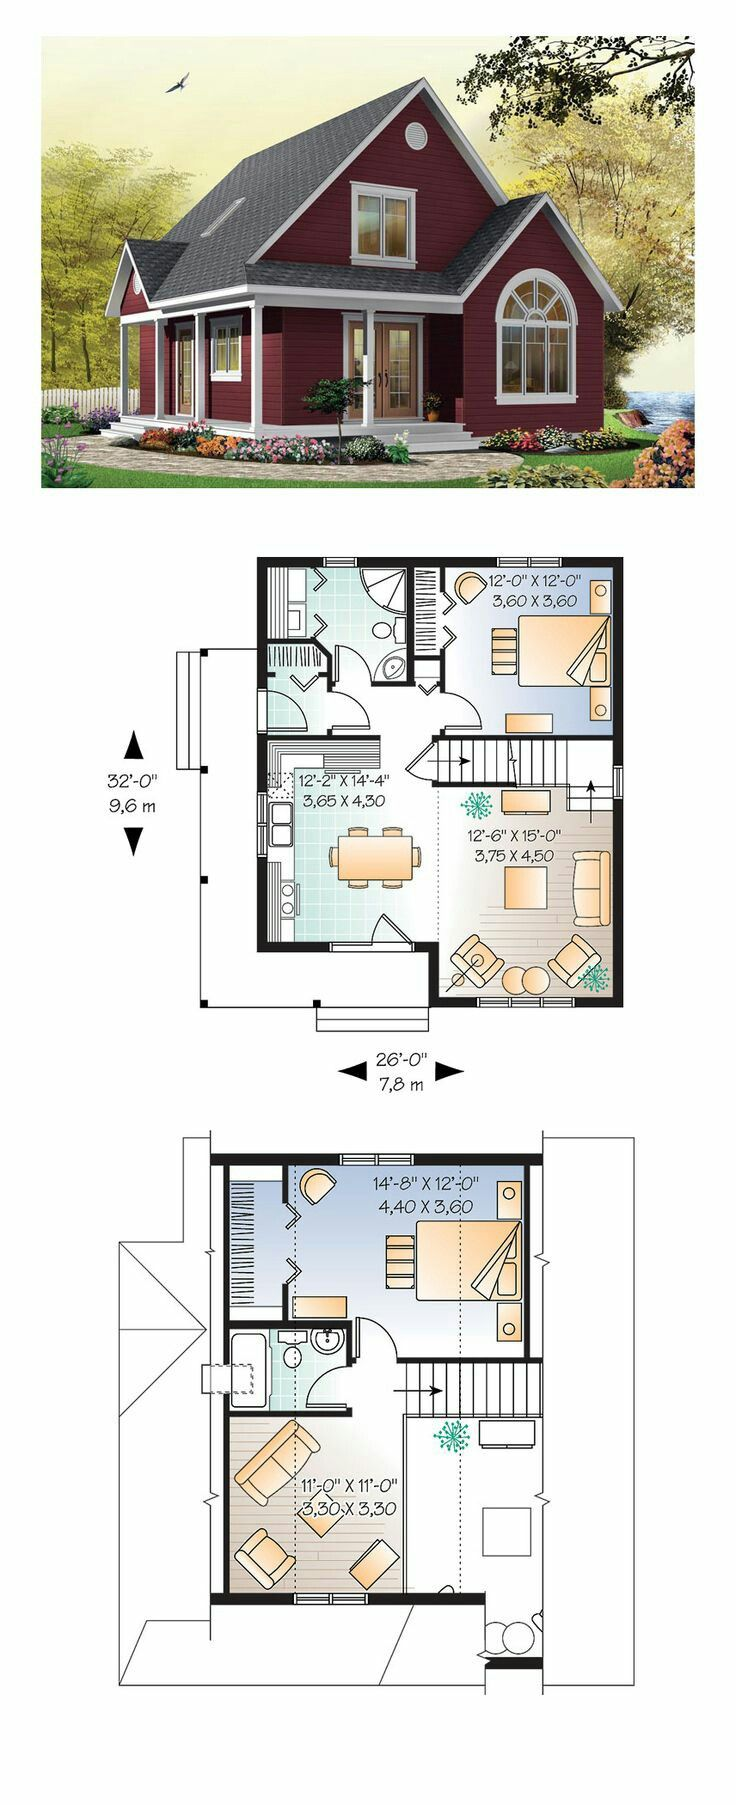 I like this floor plan larger bathroom and closet upstairs reduce